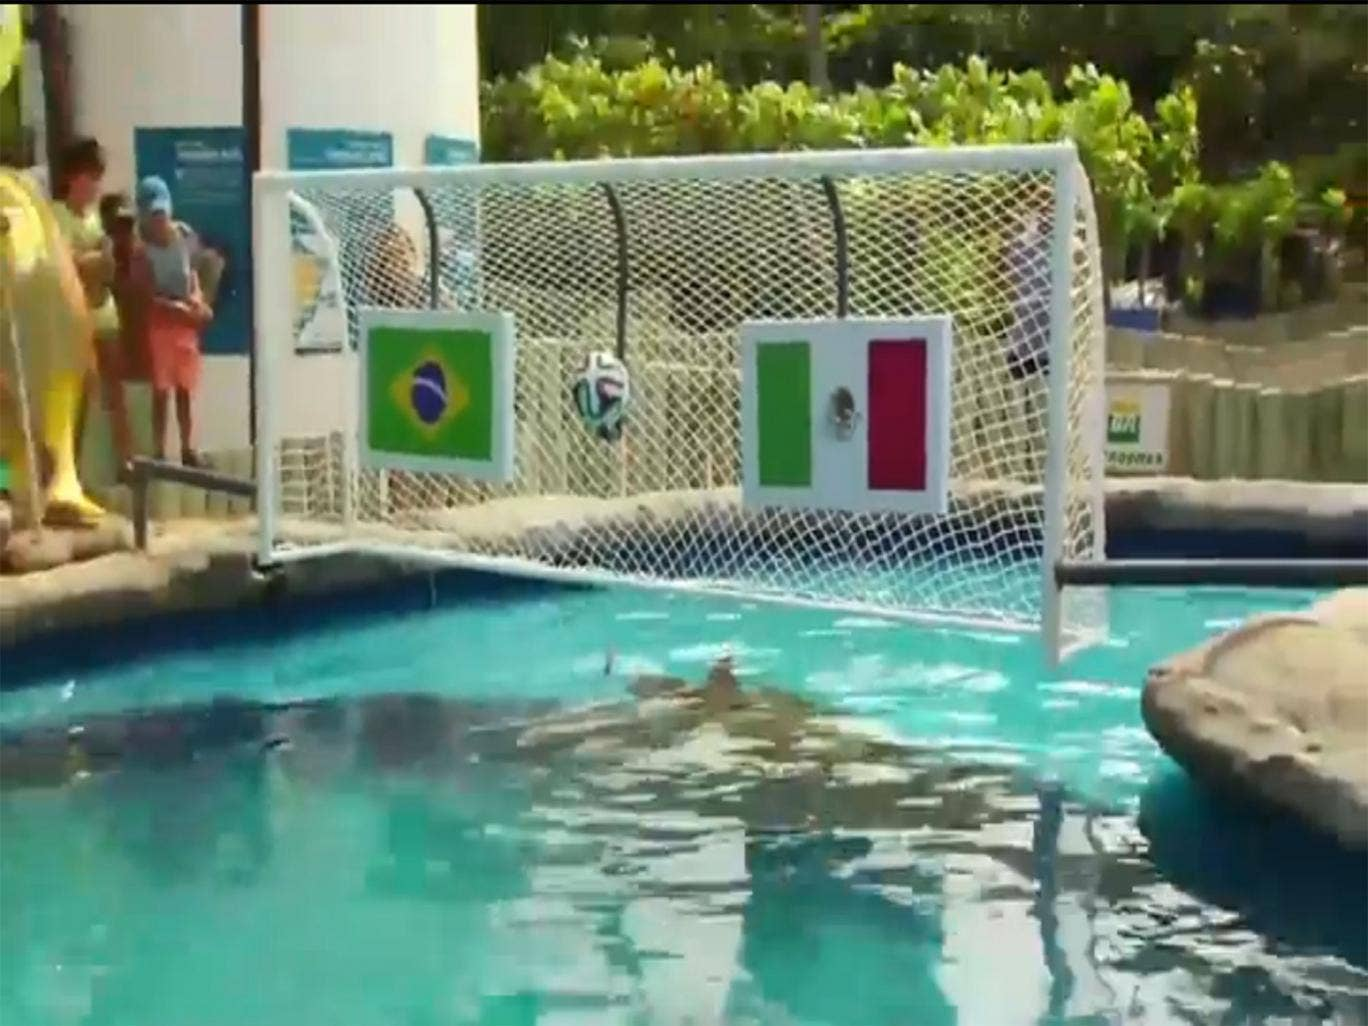 Cabeção, the 'psychic' turtle, predicts Mexico to beat Brazil in the 2014 World Cup